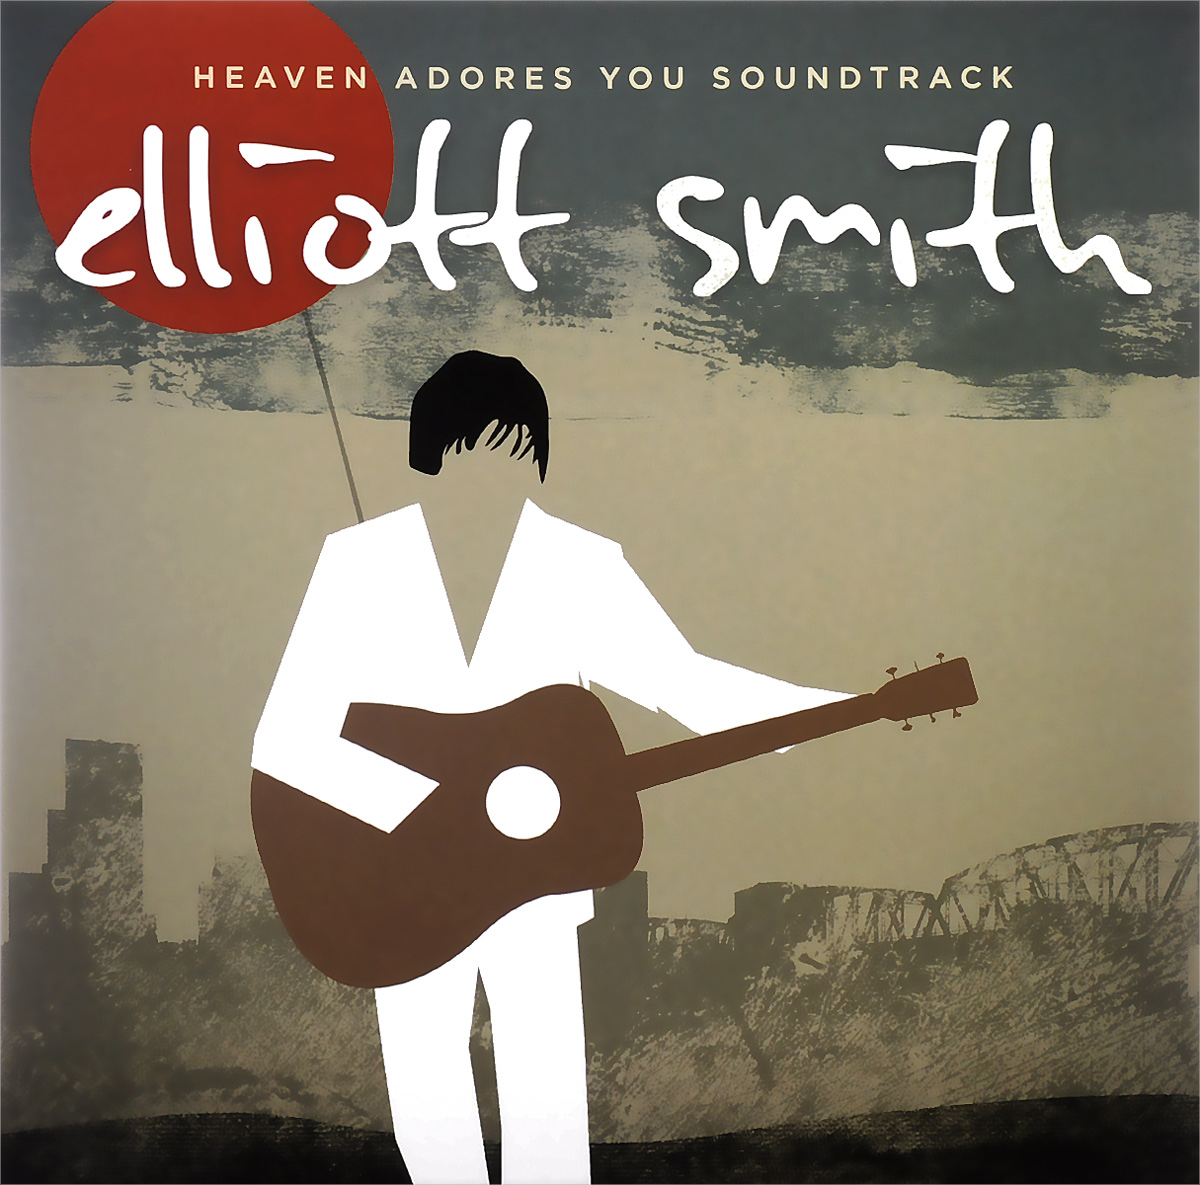 Эллиот Смит,Heatmiser,Neil Gust,Conan O'Brien Elliott Smith. Heaven Adores You. Soundtrack (2 LP) elliott smith elliott smith from a basement on the hill 2 lp